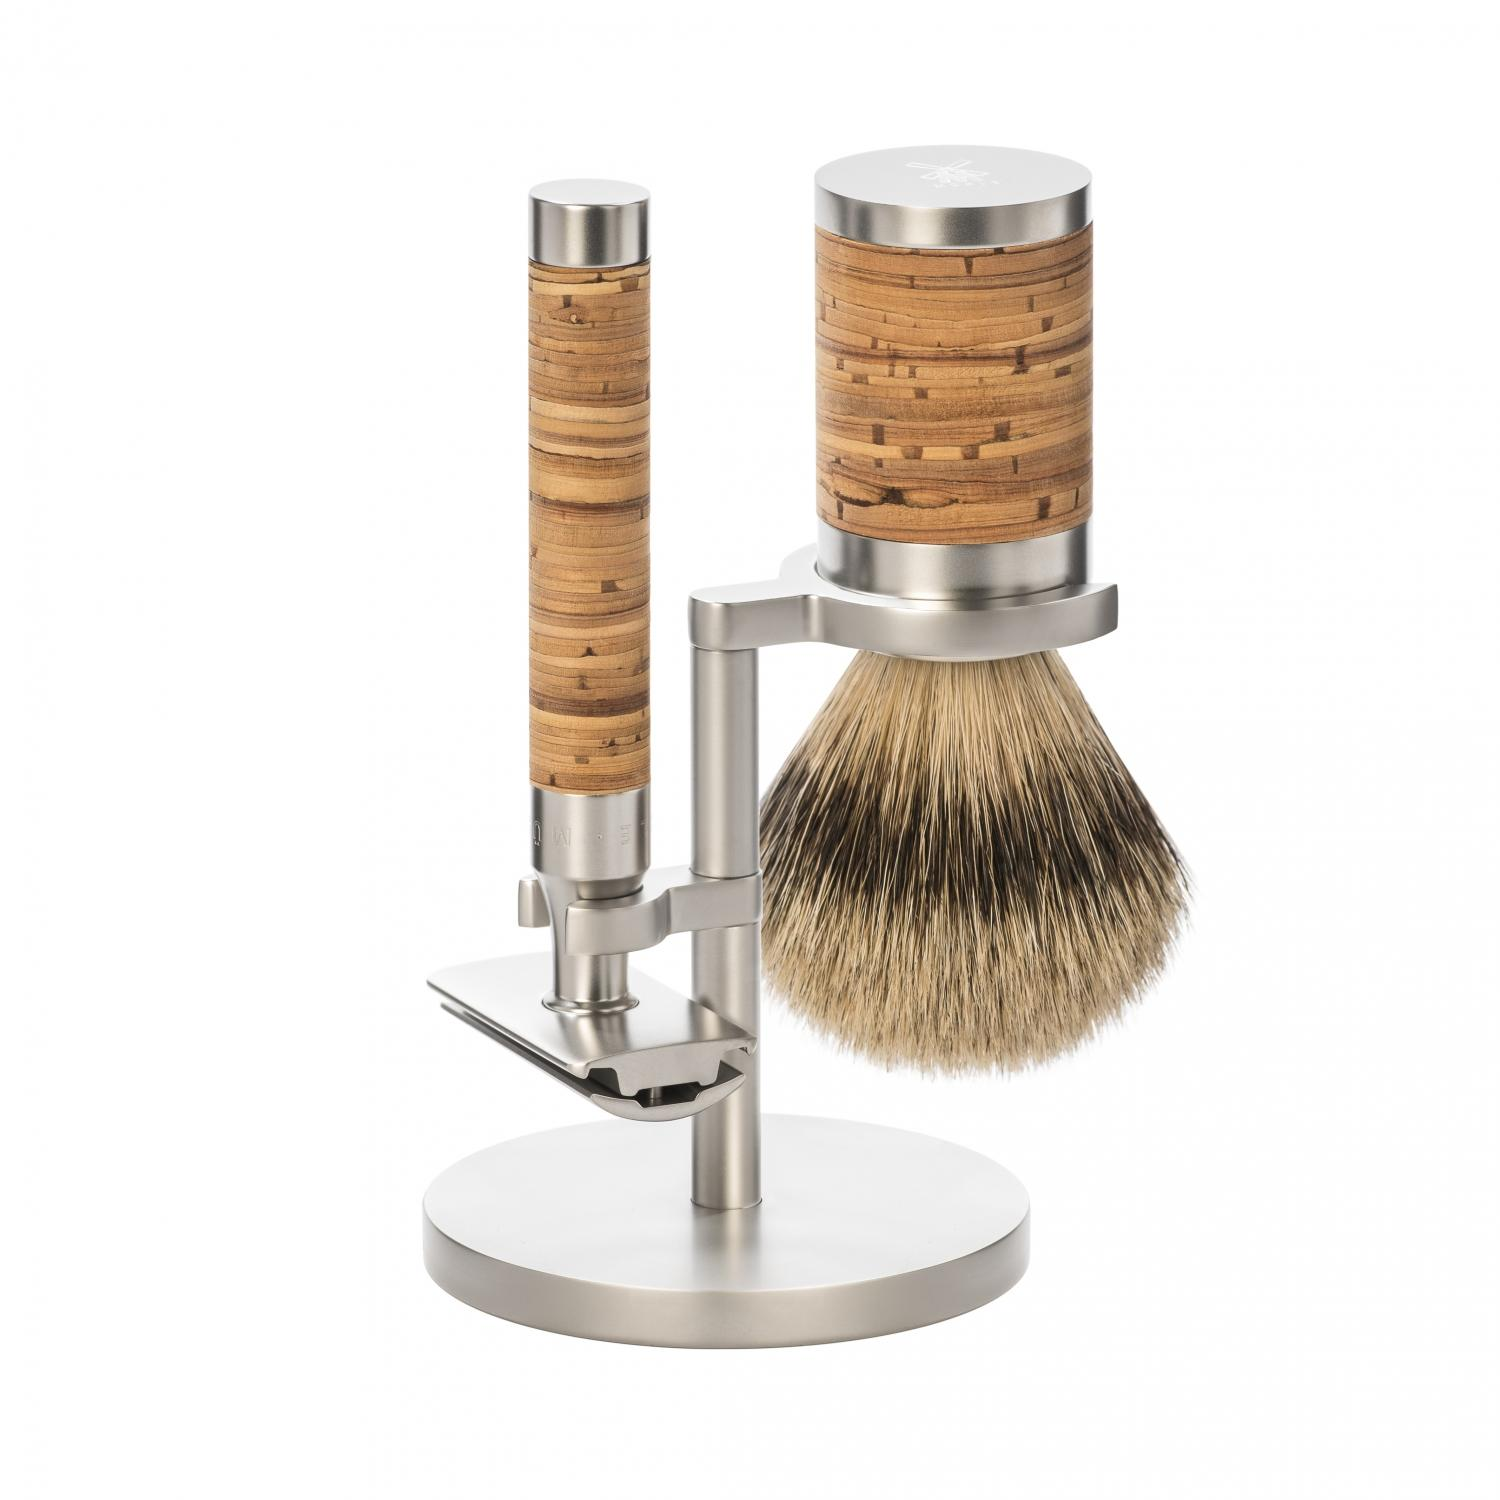 MÜHLE silvertip badger 3 piece shaving set in stainless steel and birch bark